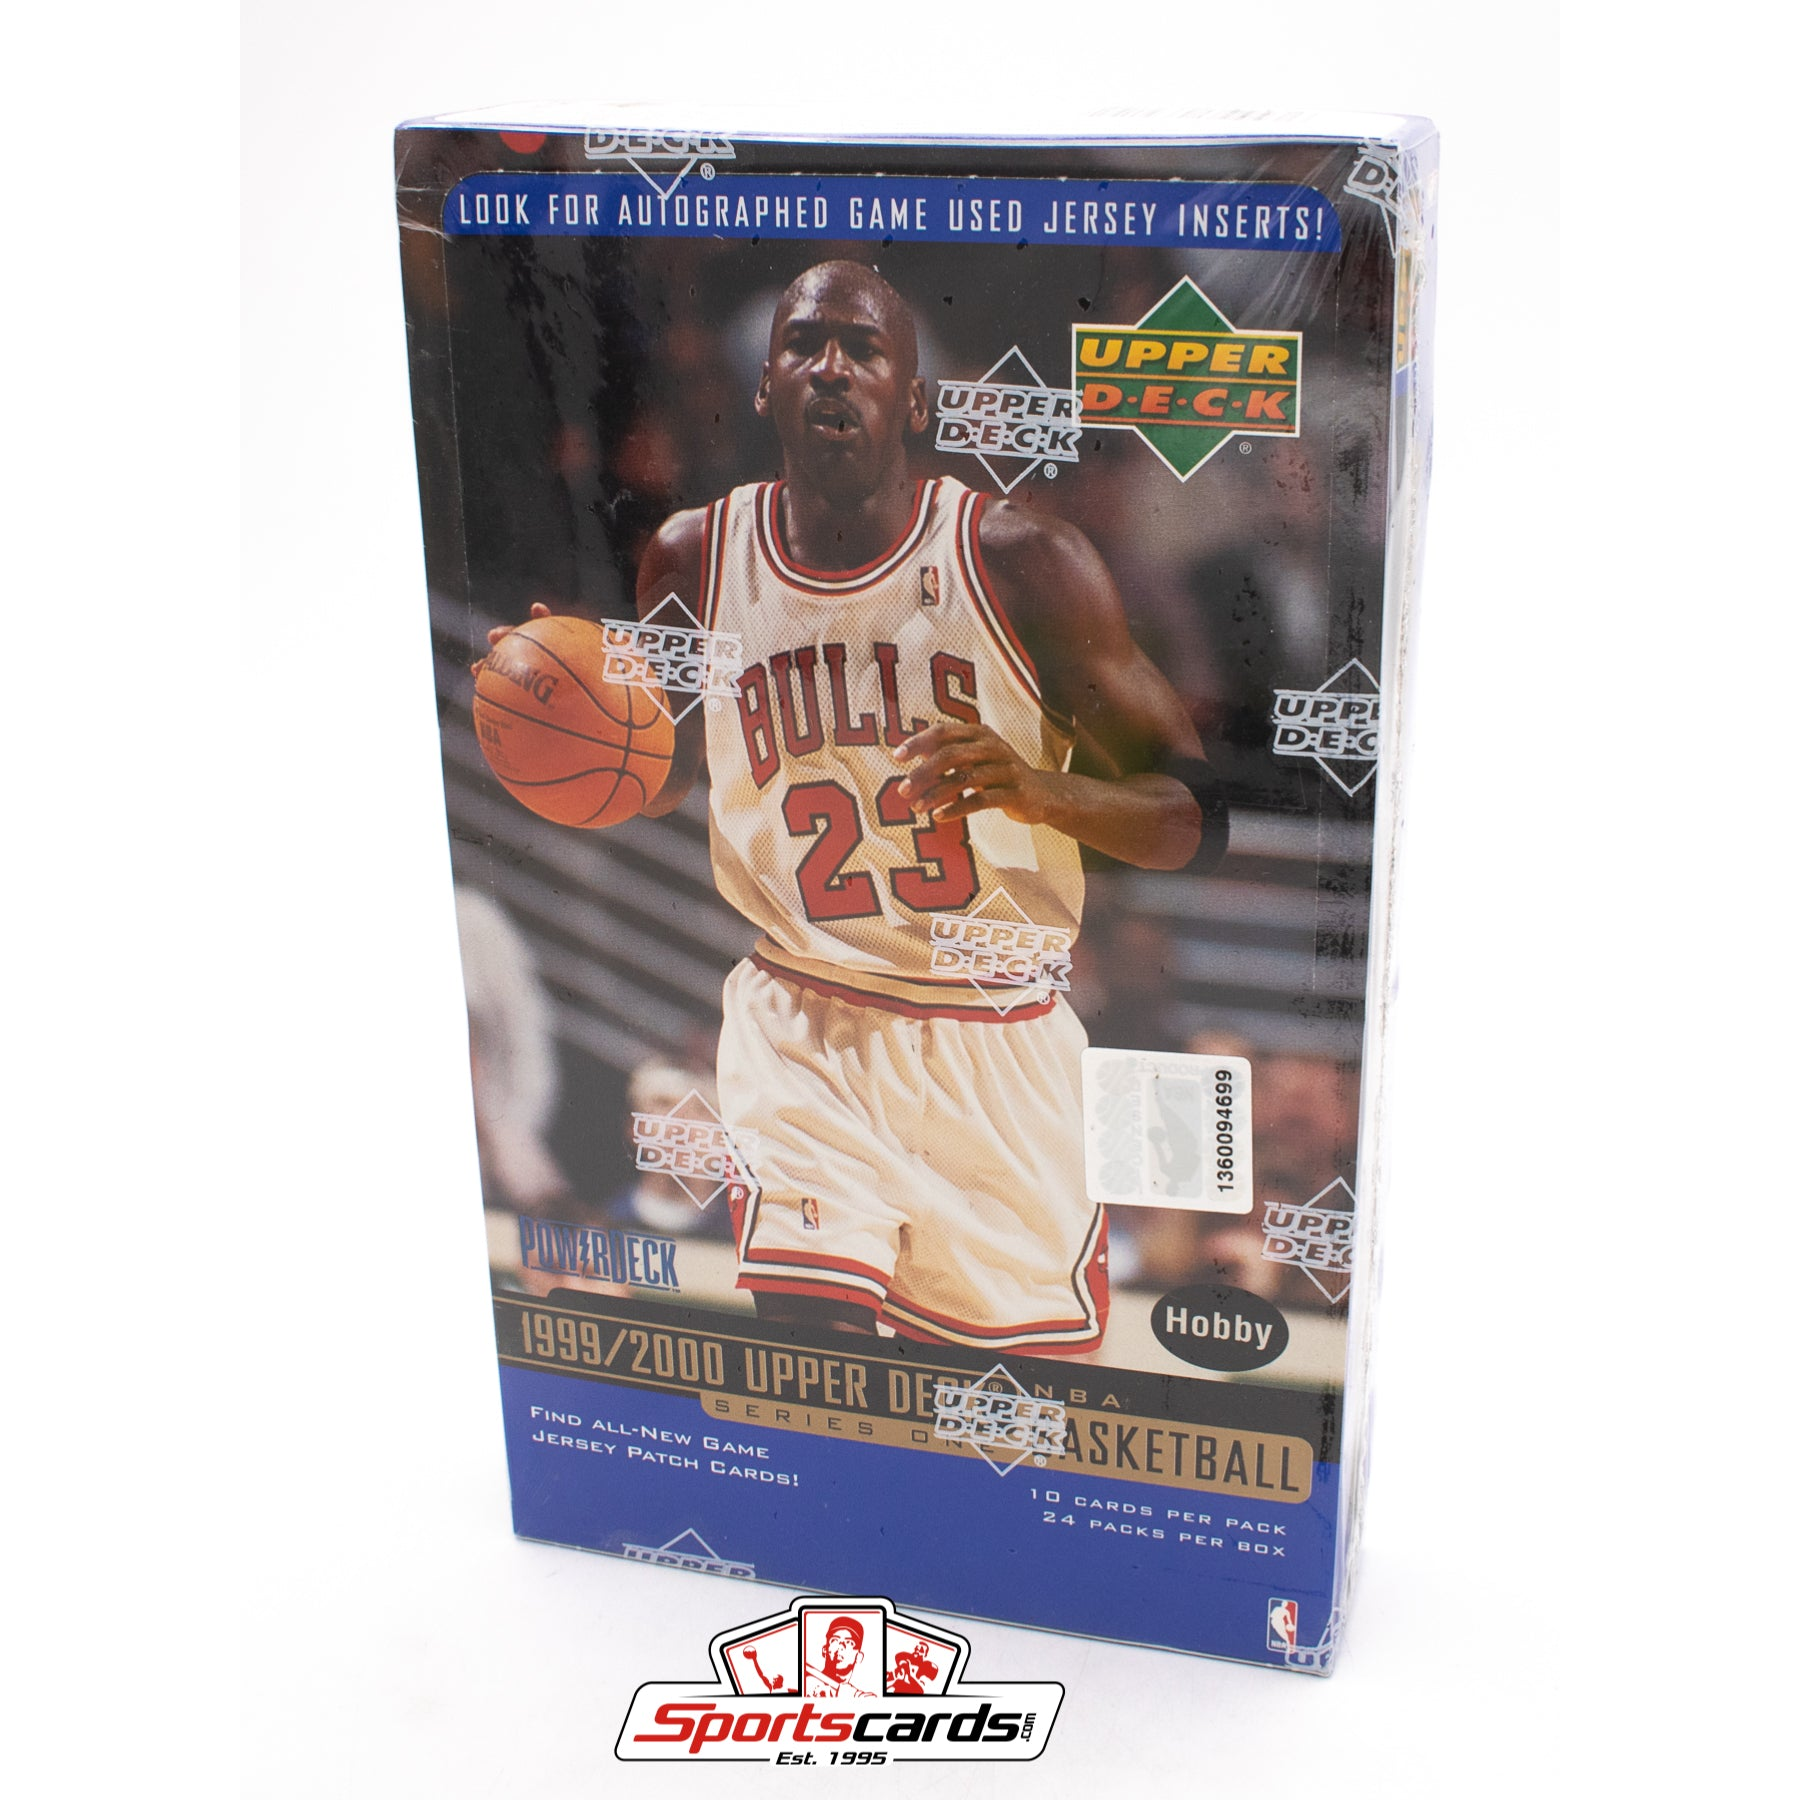 1999-2000 Upper Deck Basketball Series 1 Hobby Factory Sealed Box